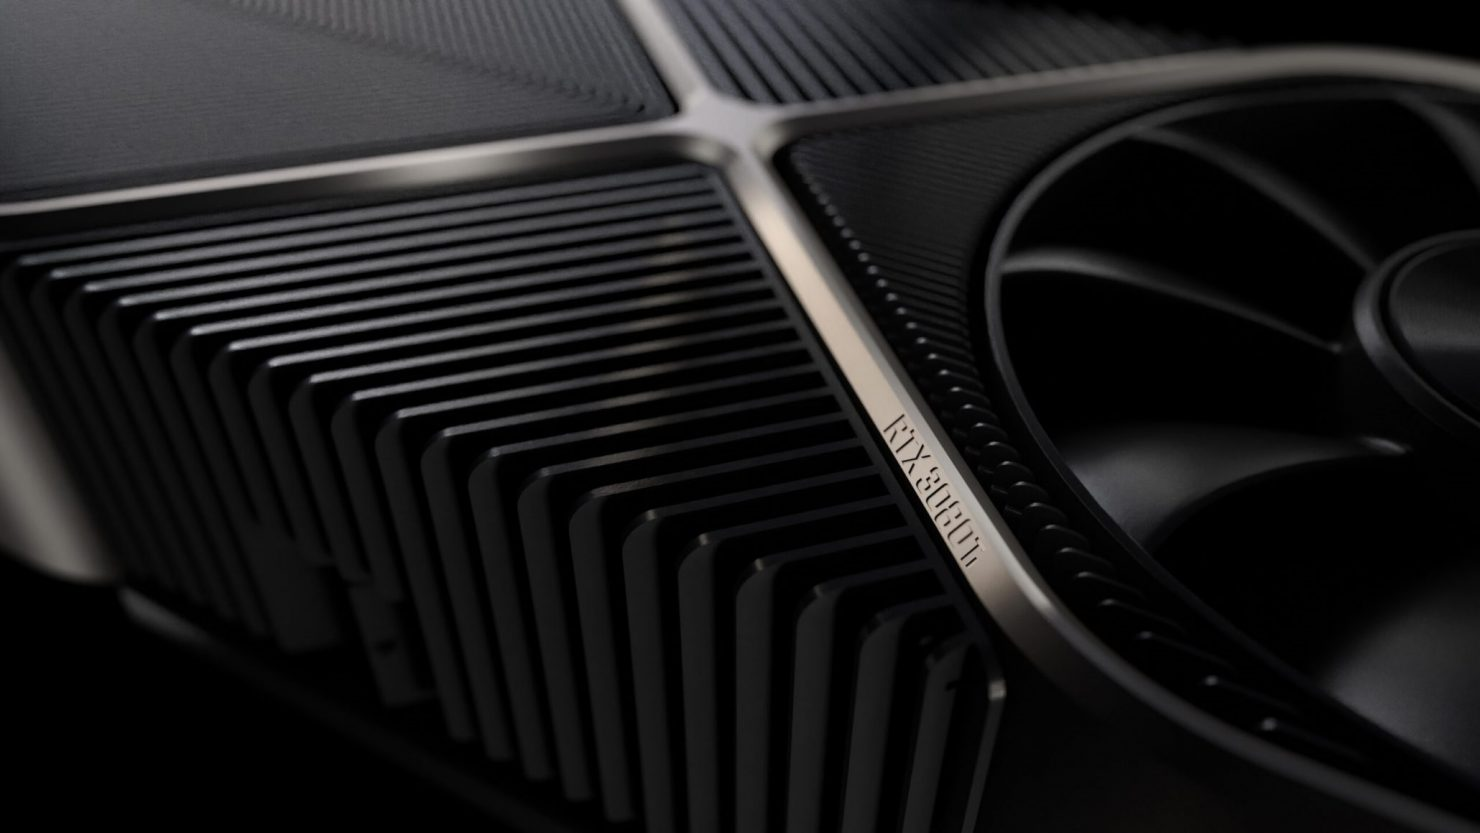 custom-nvidia-geforce-rtx-3080-ti-graphics-cards-listed-online,-starting-at-around-1500-euros